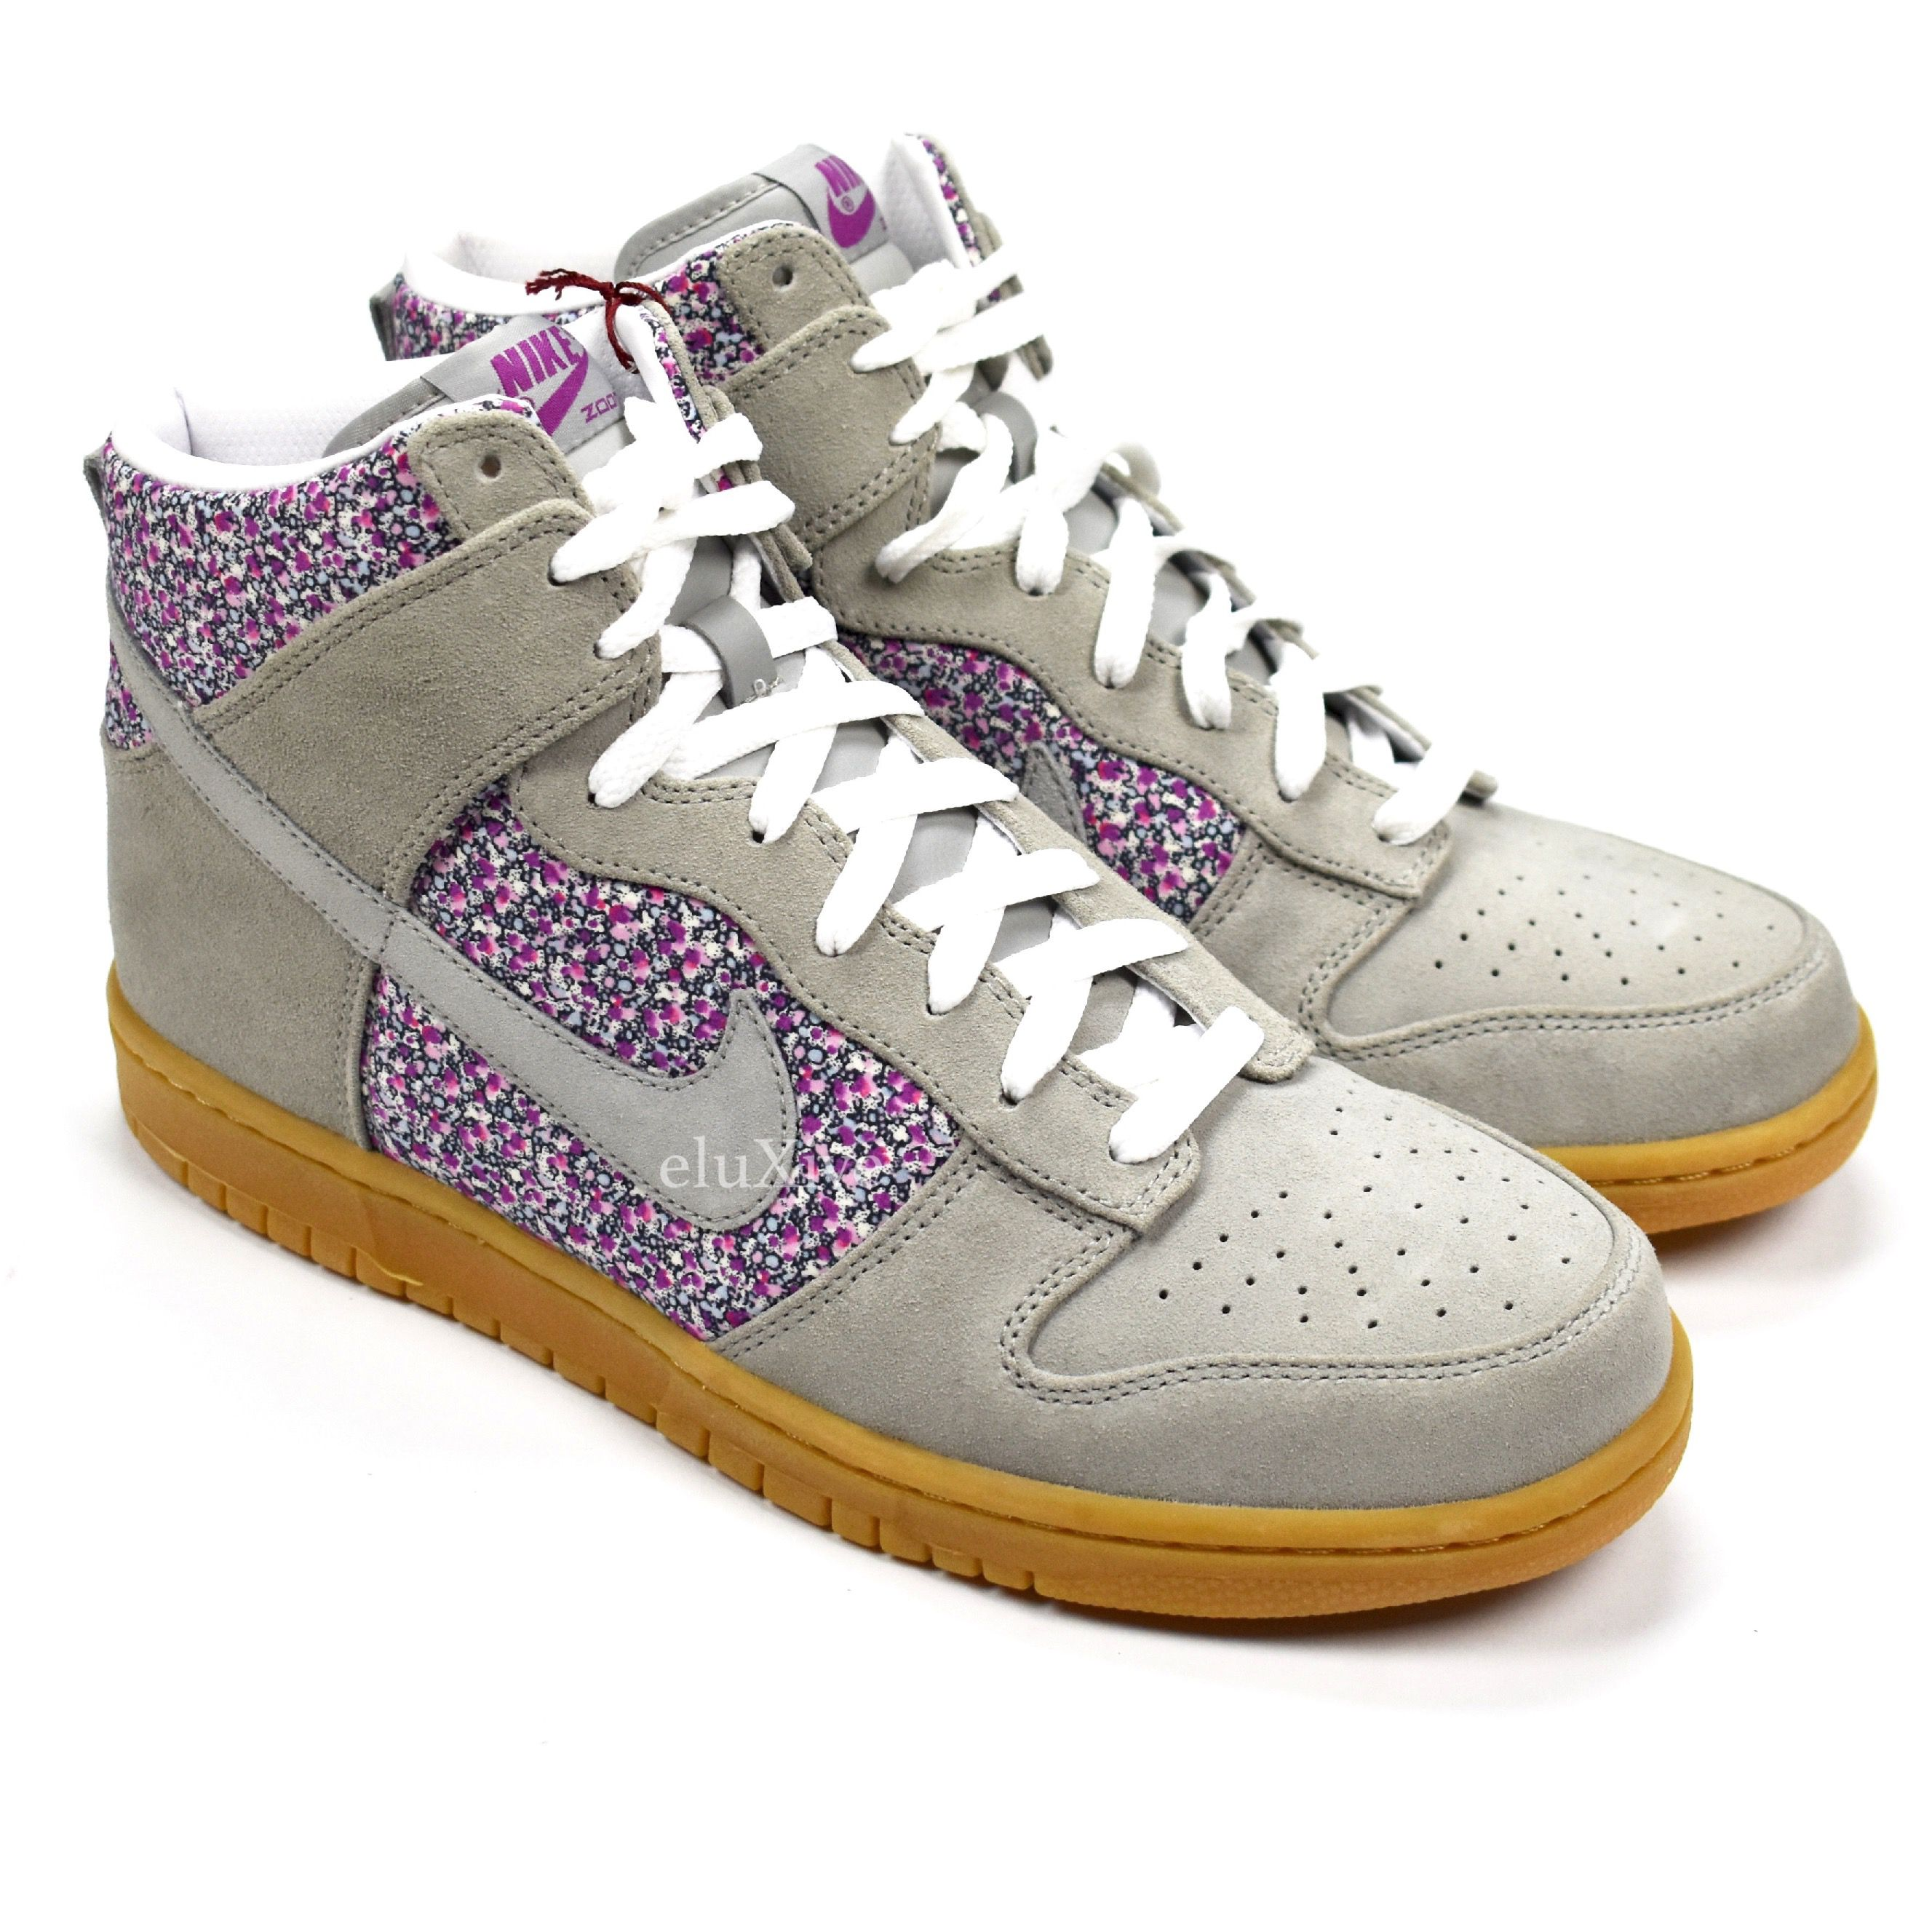 affordable price great deals 100% high quality Nike Nike Dunk High Premium Liberty London 2008 Ds | Grailed